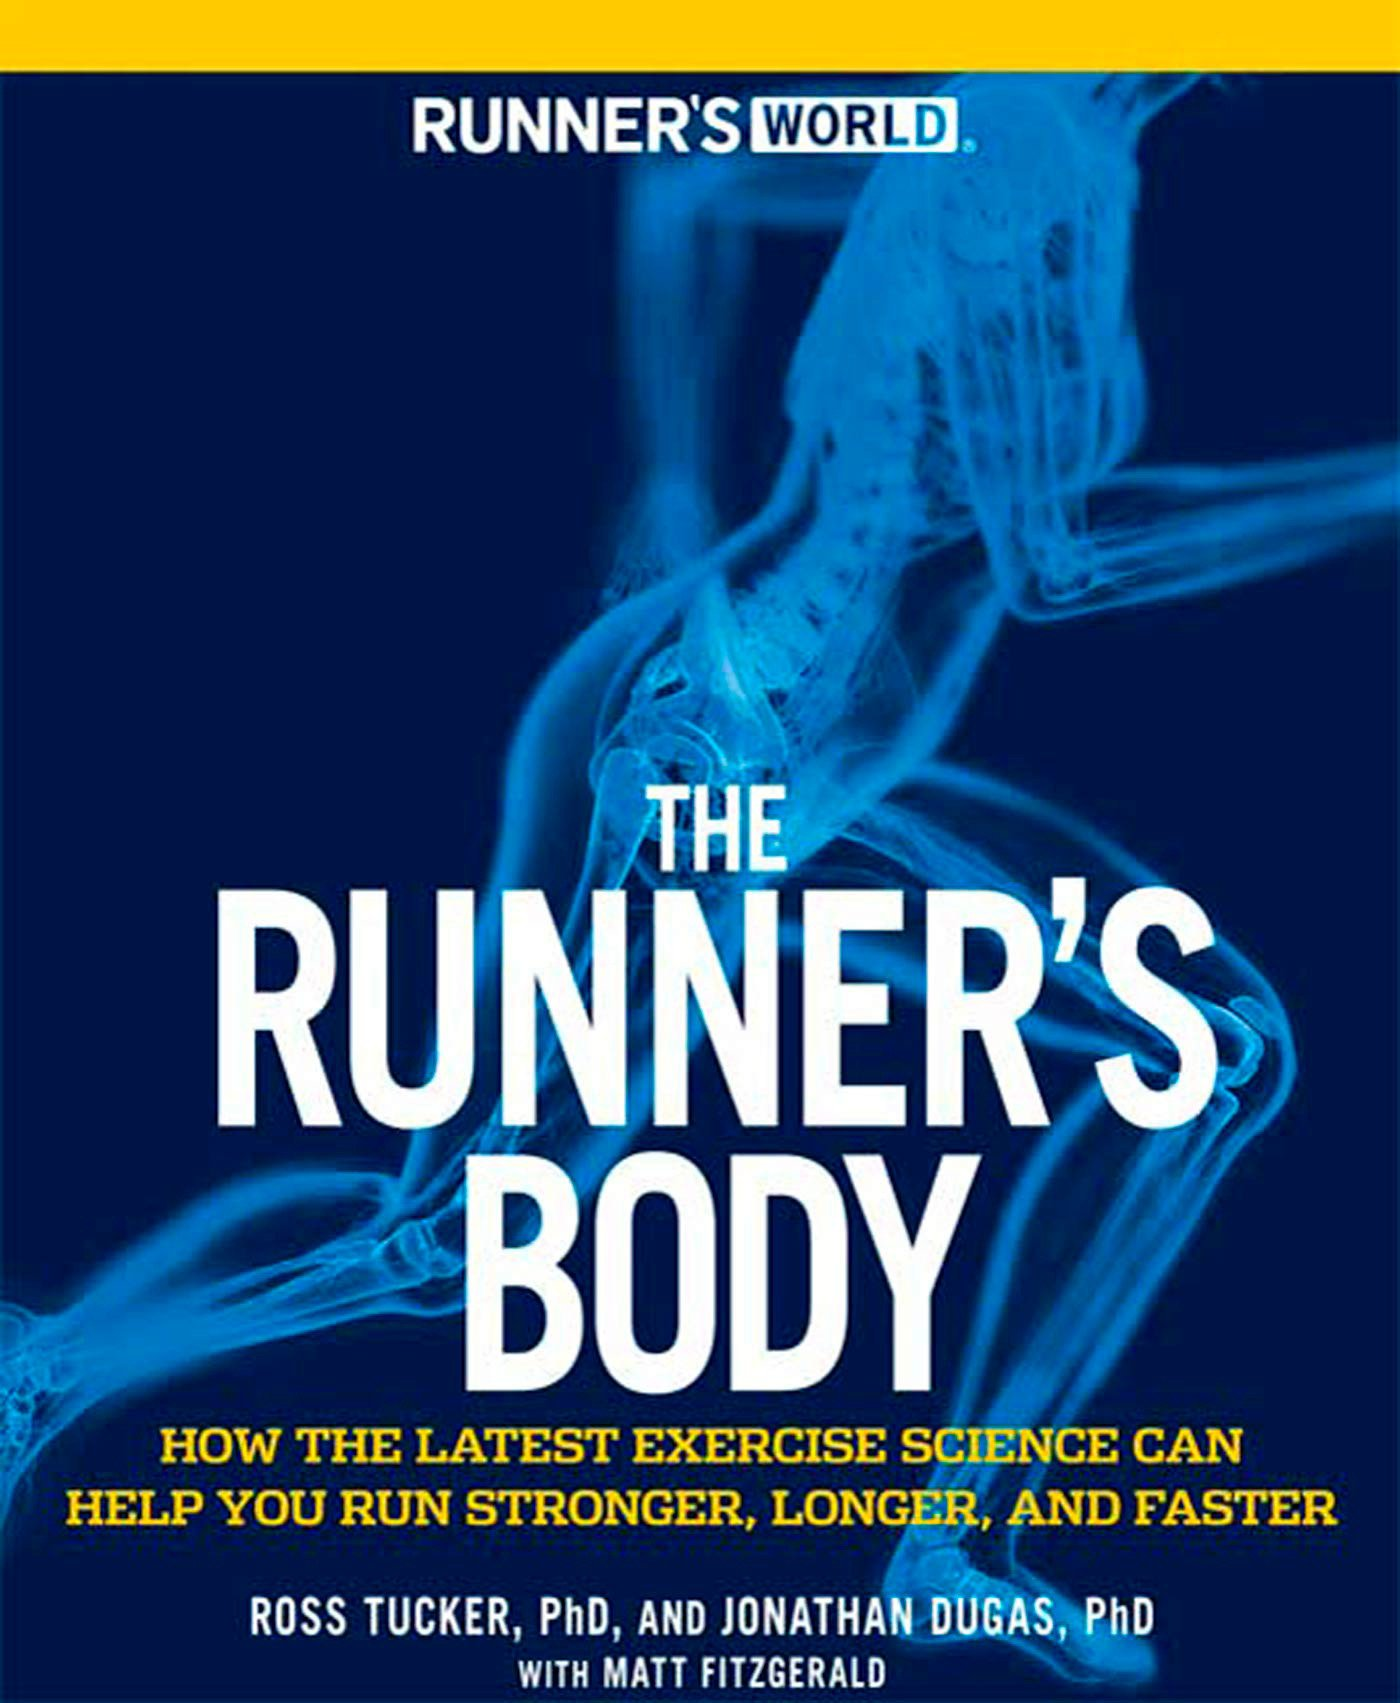 Runner's World The Runner's Body: How the Latest Exercise Science Can Help You Run Stronger, Longer, and Faster PDF Text fb2 ebook